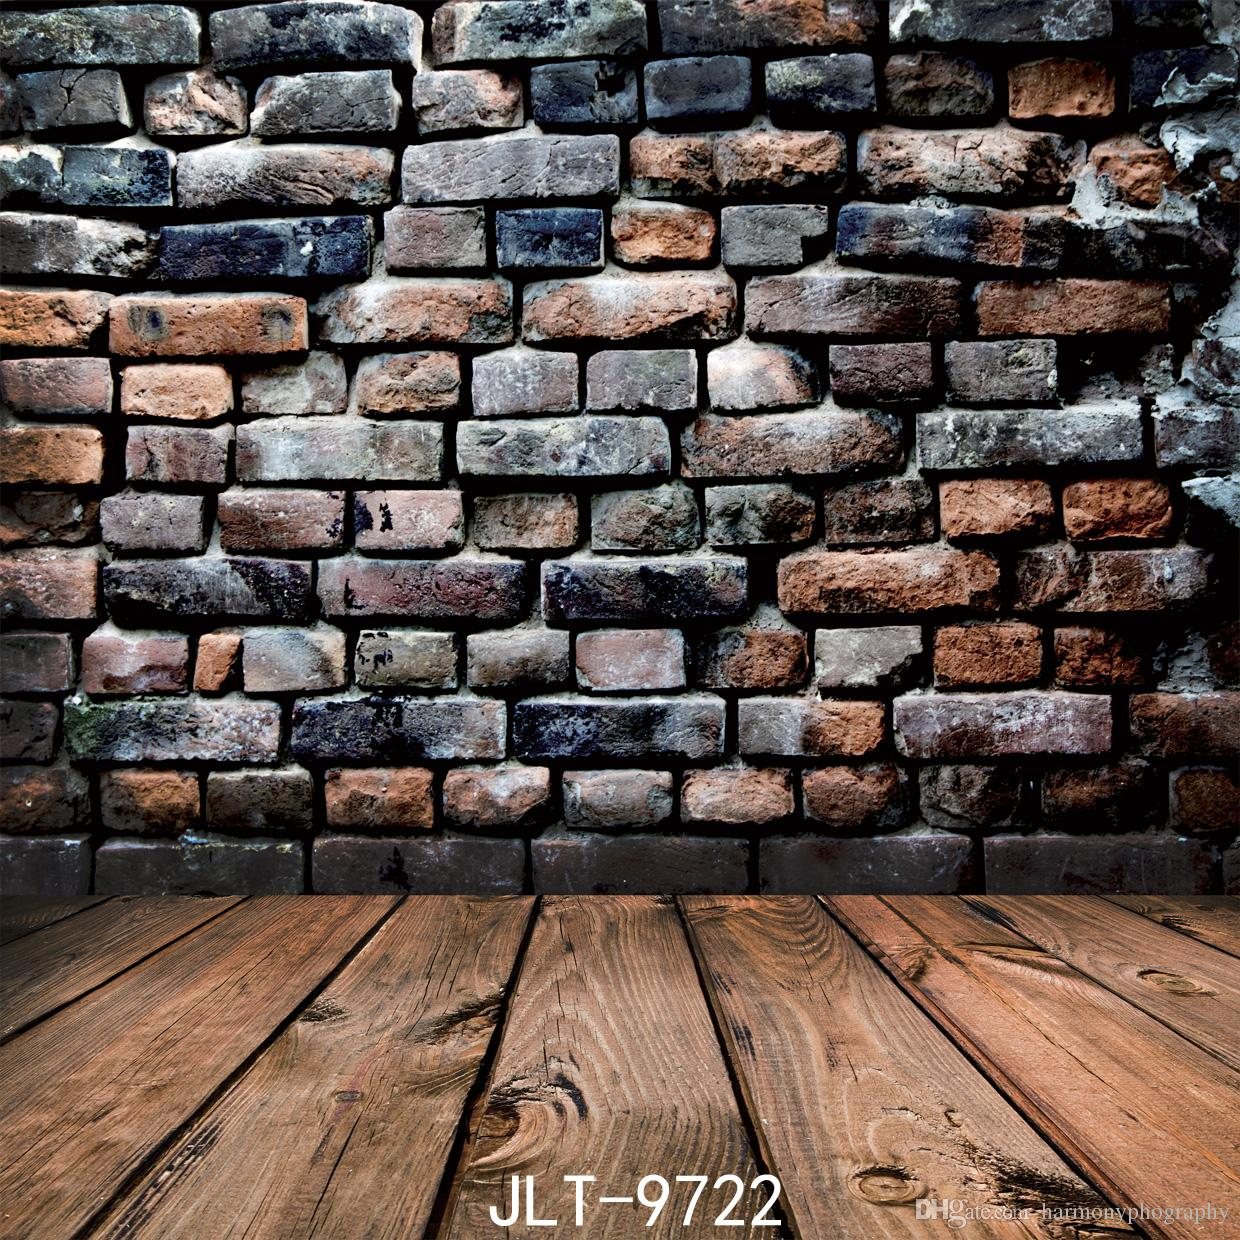 Stone Floor Brick Wall Bicycle Balloon Photography Backdrops Photo Props Studio Background 5x7ft